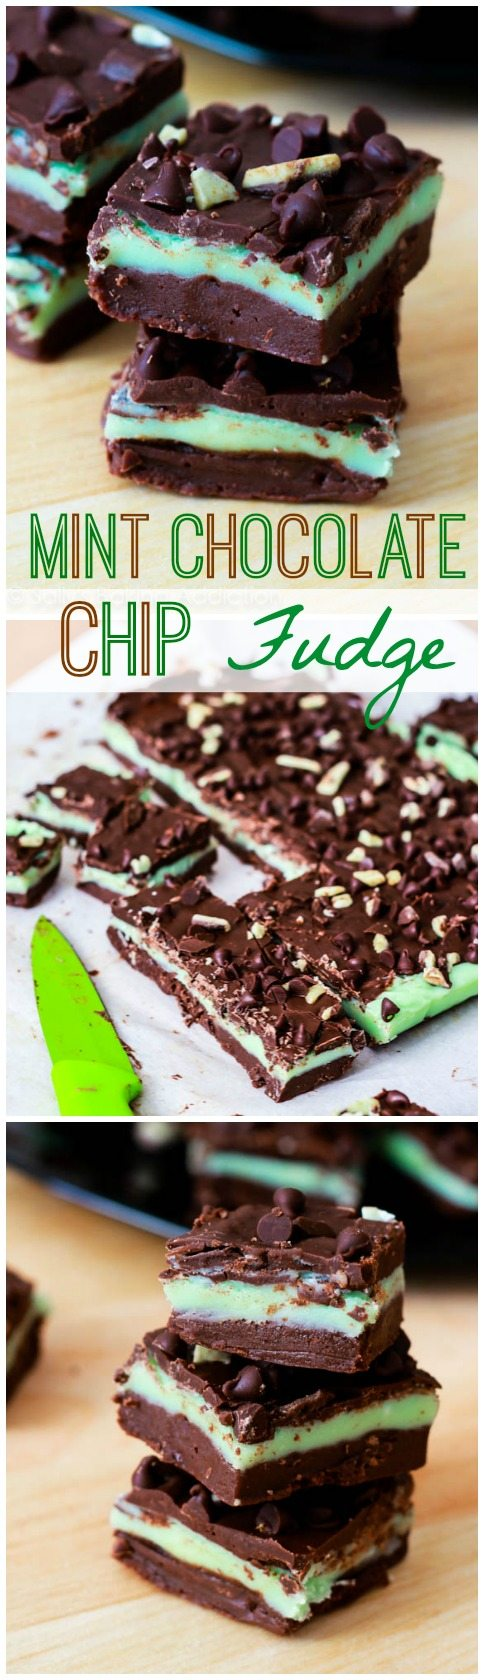 The BEST Mint Chocolate Chip Fudge